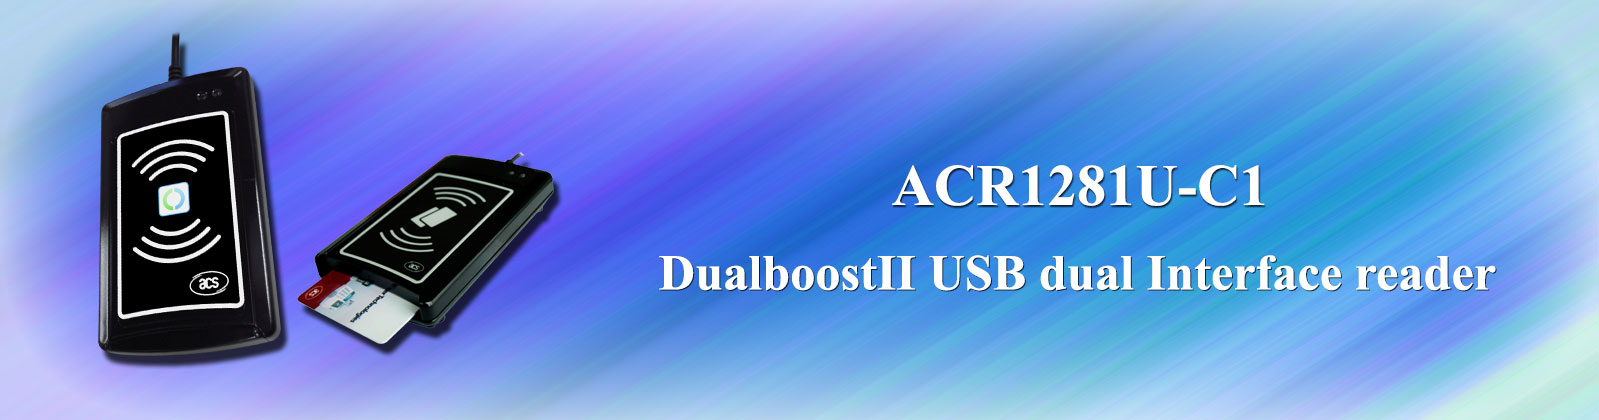 ACR1281U-C1 DualBoost II USB Dual Interface Reader